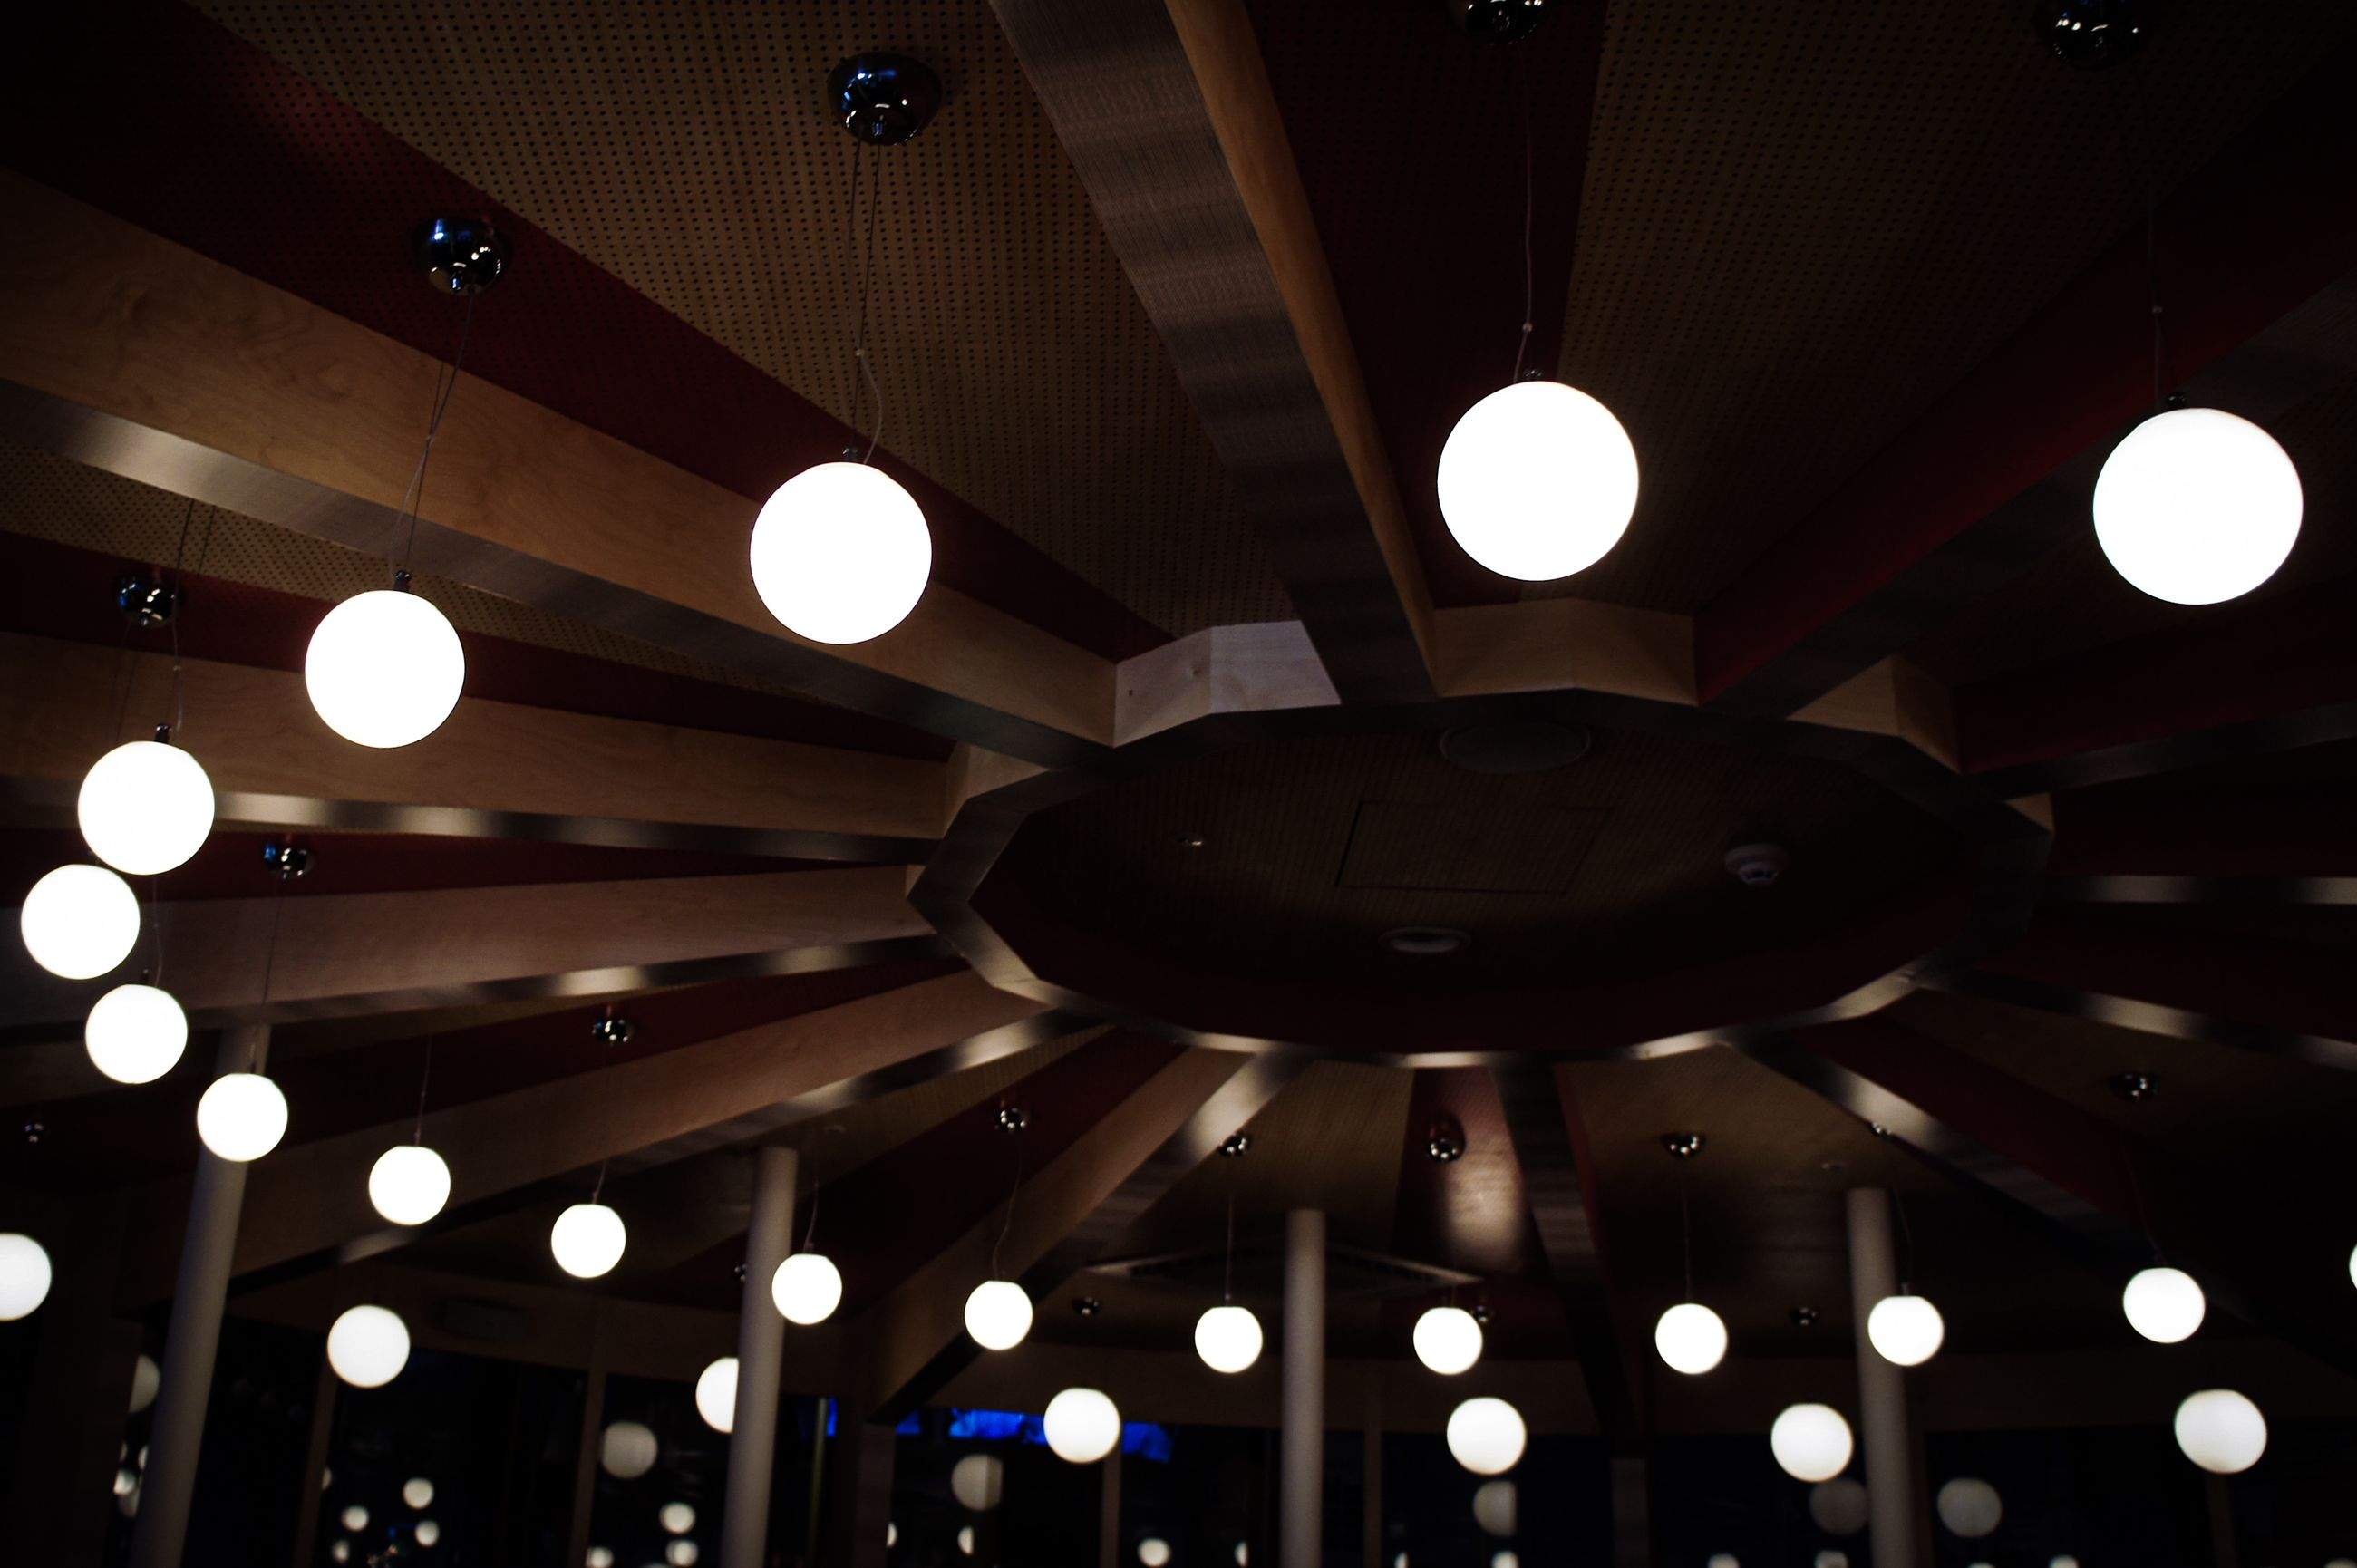 illuminated, lighting equipment, ceiling, low angle view, indoors, light, hanging, electric light, technology, glowing, electricity, no people, light - natural phenomenon, pattern, decoration, architecture, pendant light, light fixture, built structure, geometric shape, electric lamp, luxury